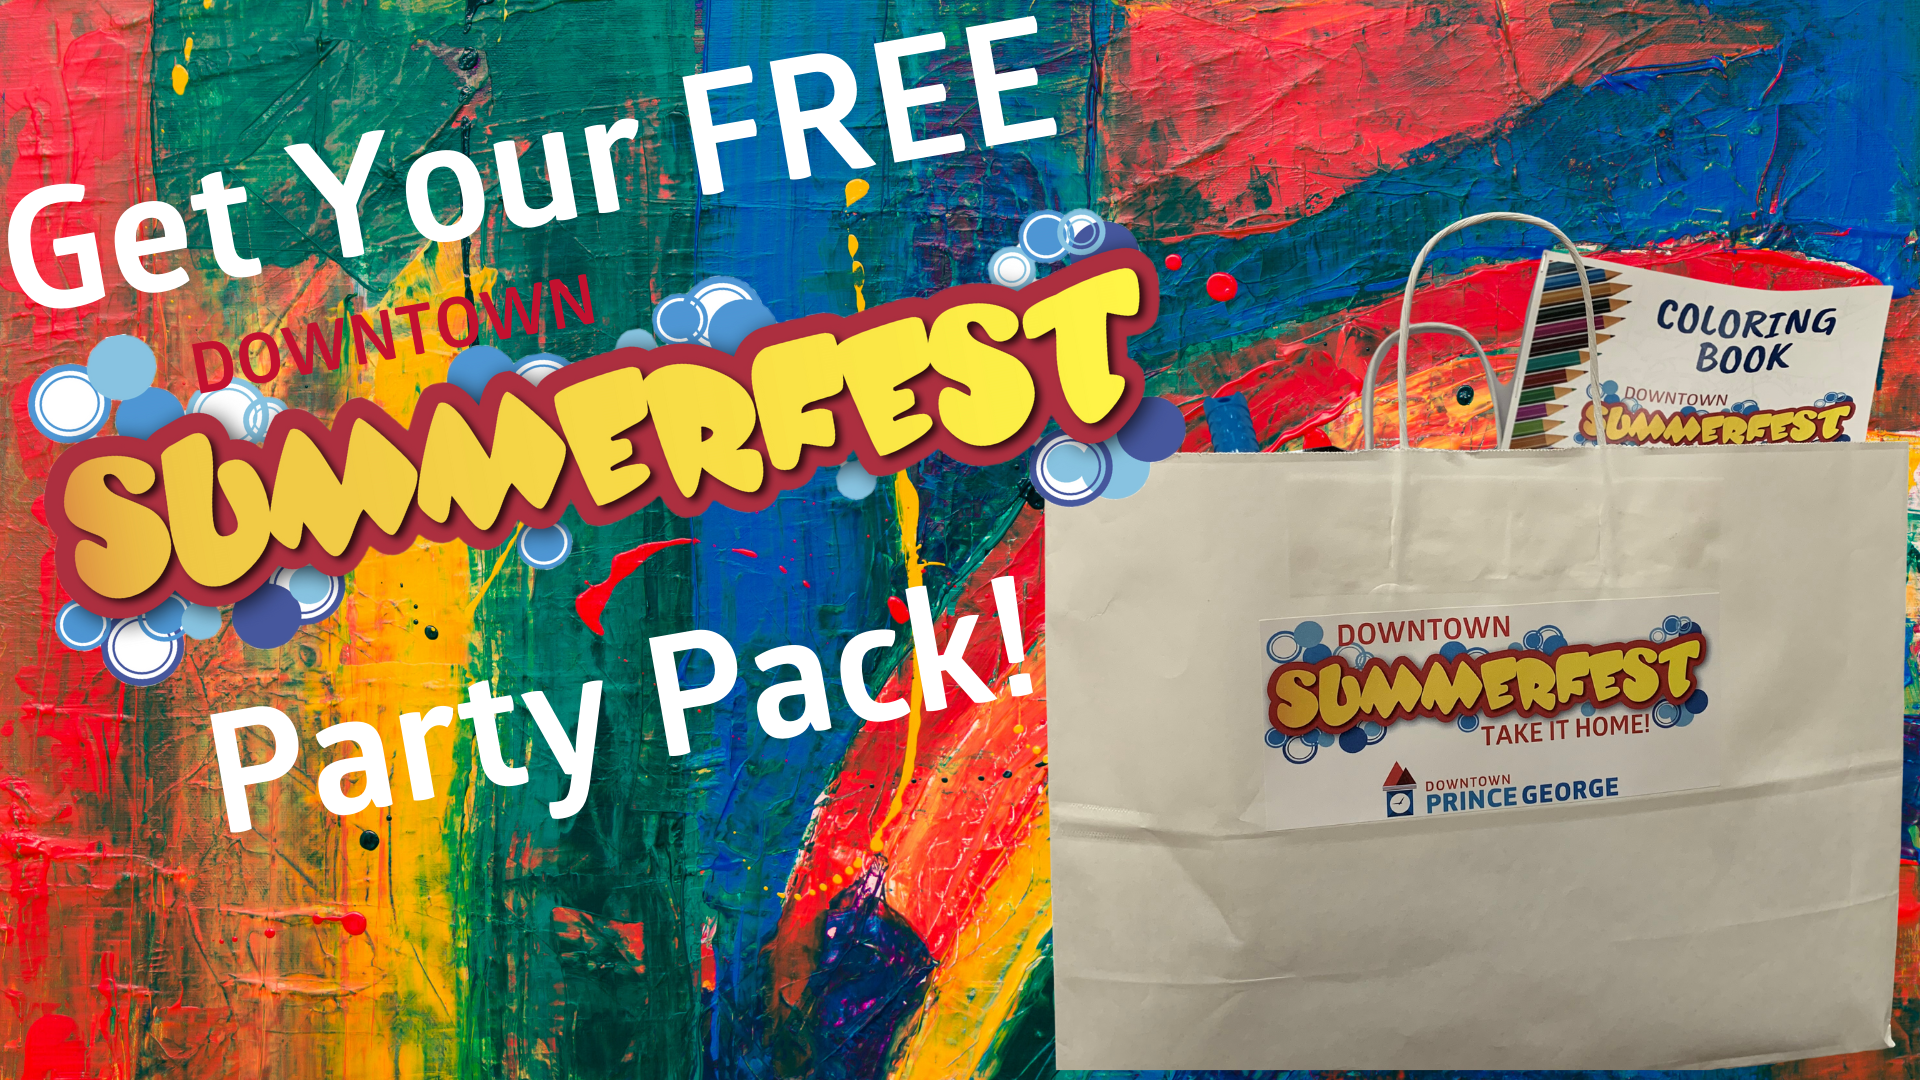 Get Your FREE Party Pack